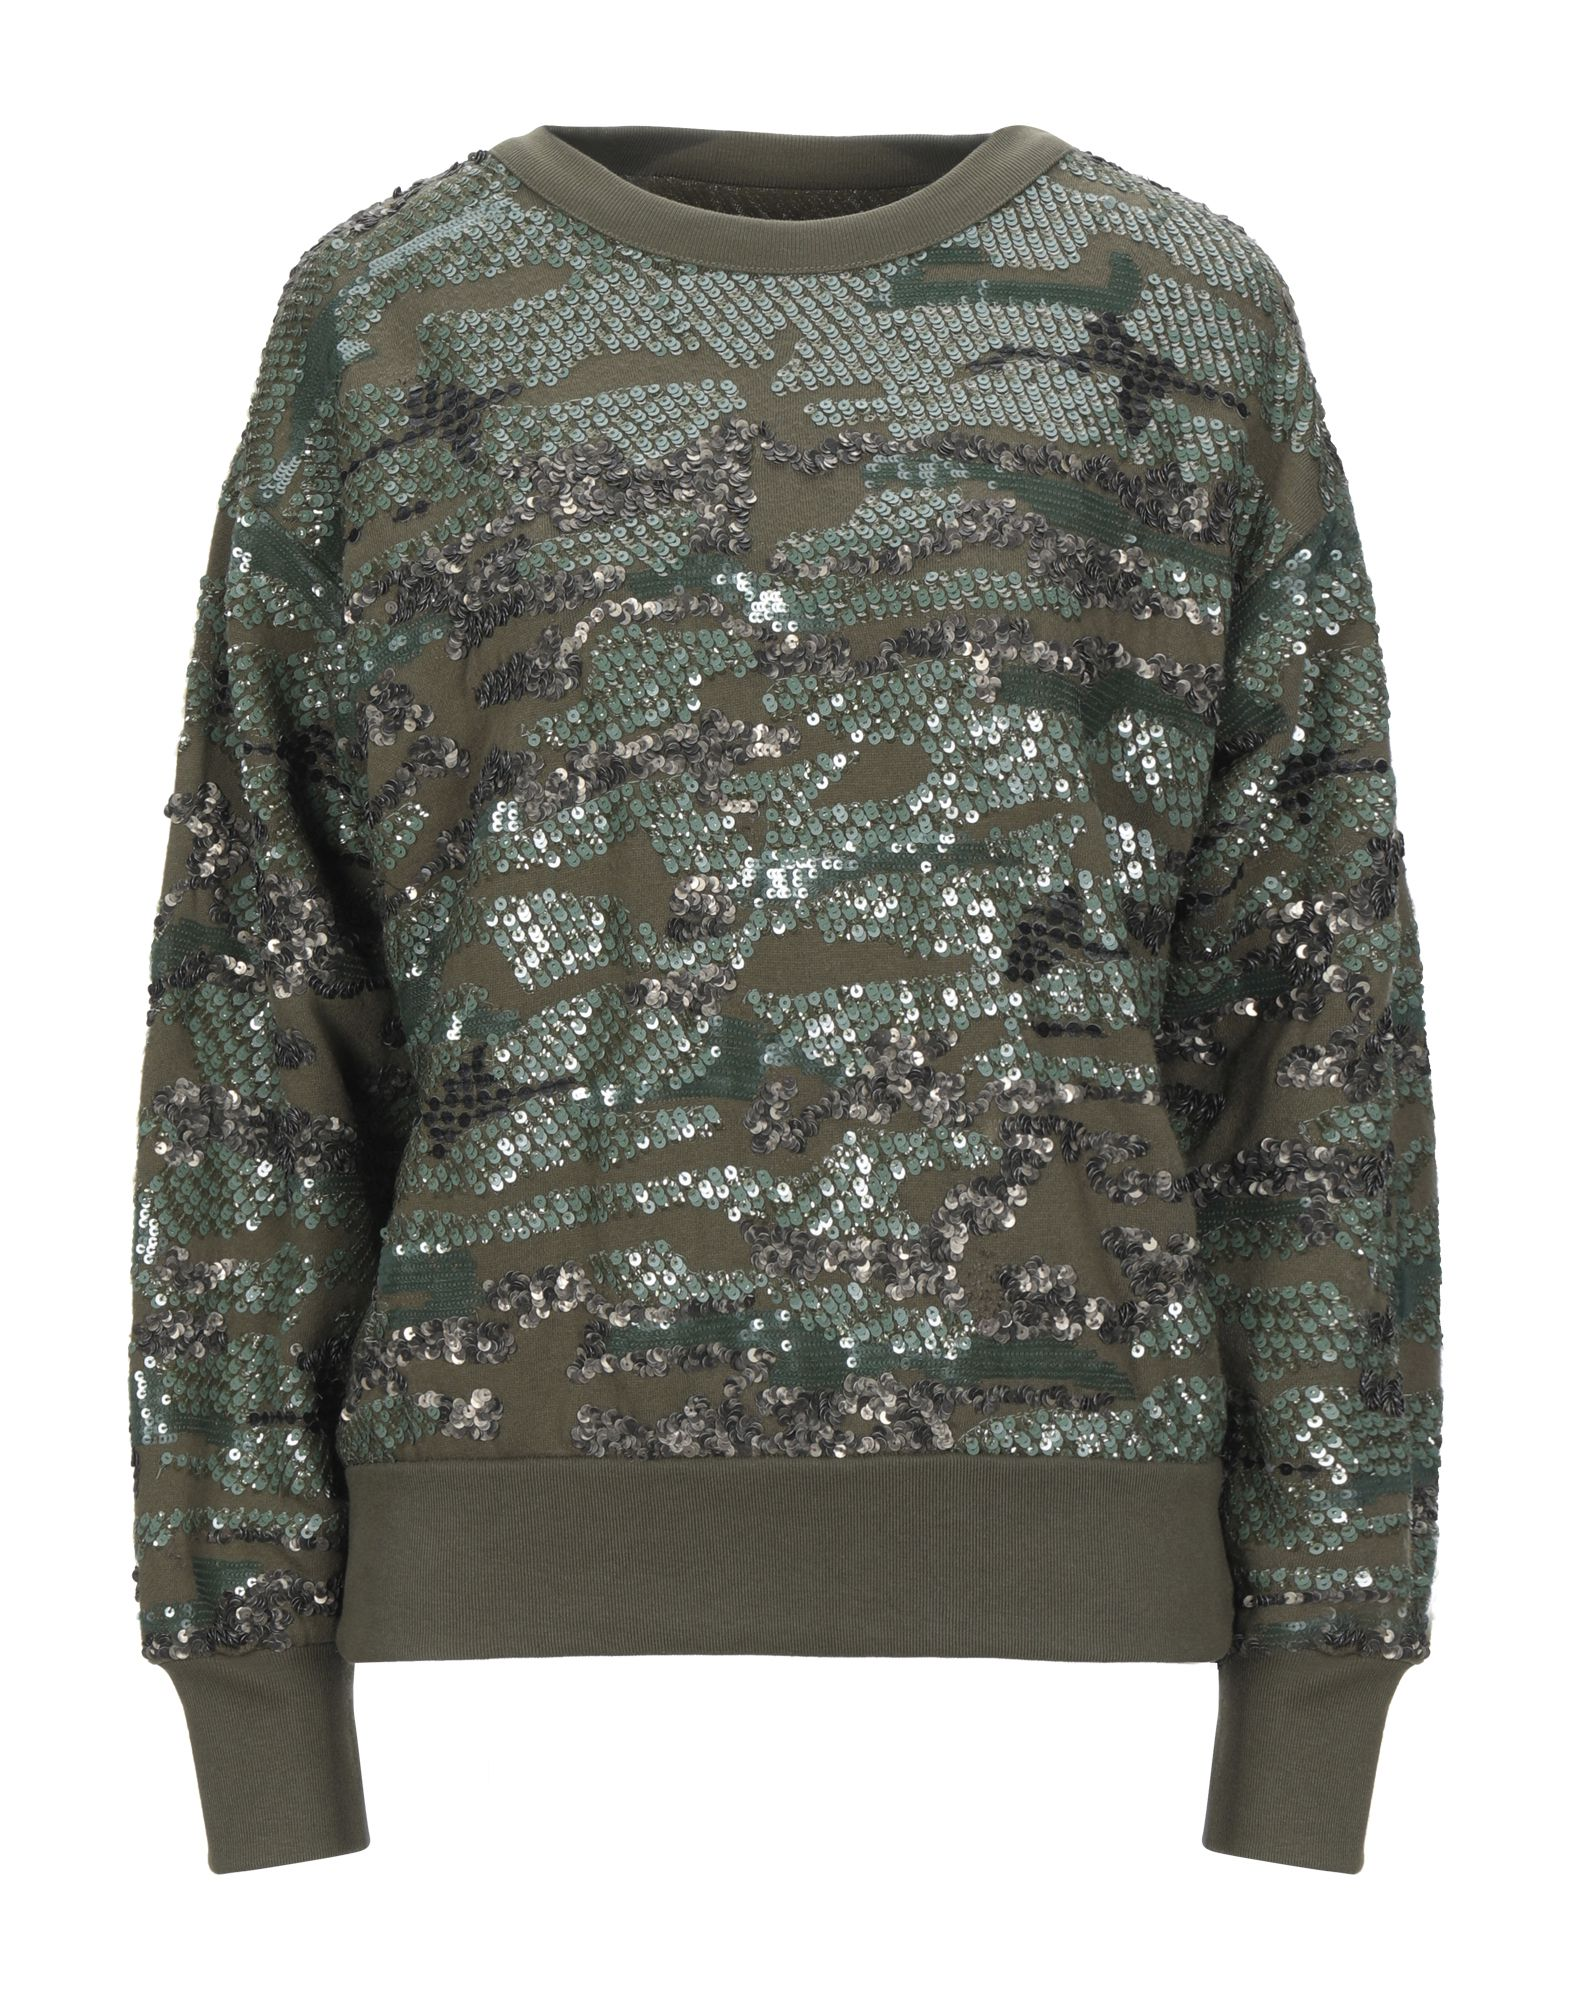 ISABEL MARANT Sweatshirts. sequined, basic solid color, round collar, long sleeves, no pockets. 62% Cotton, 38% Polyester